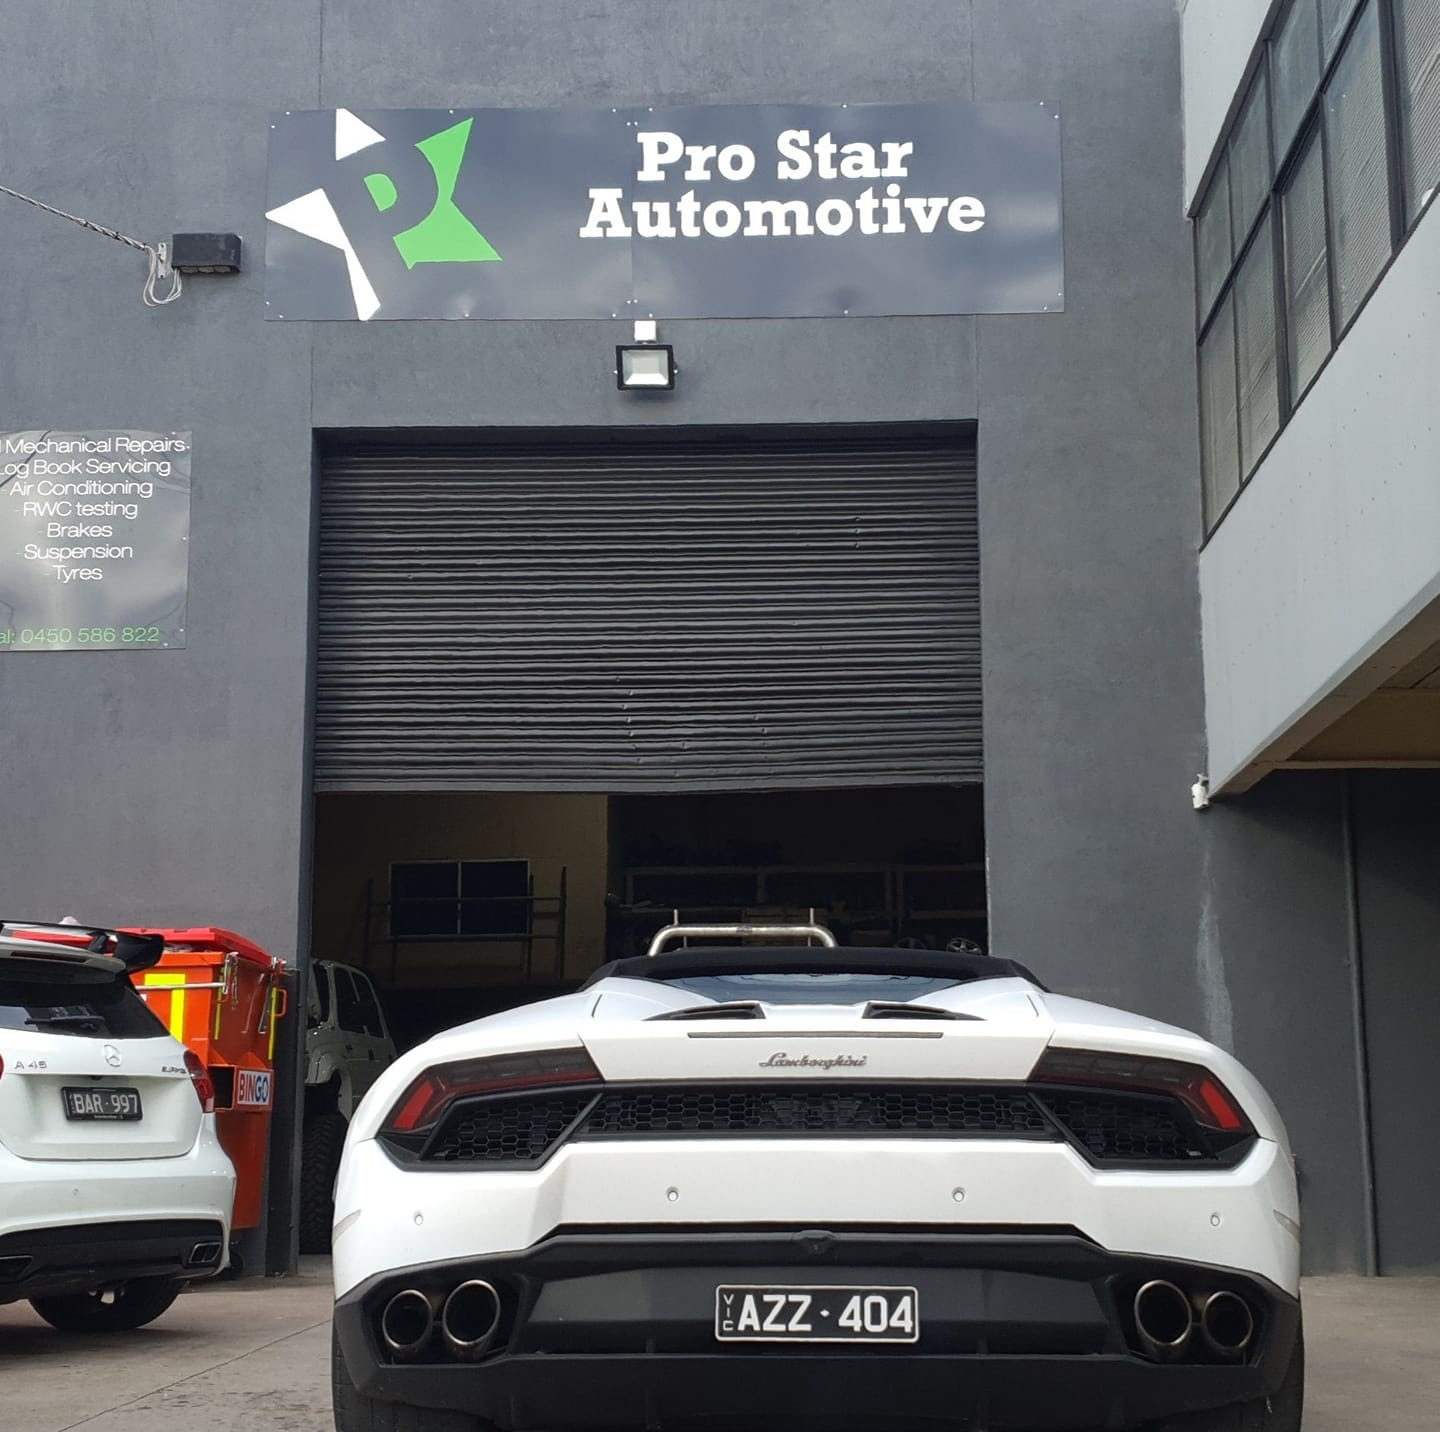 Pro Star Automotive